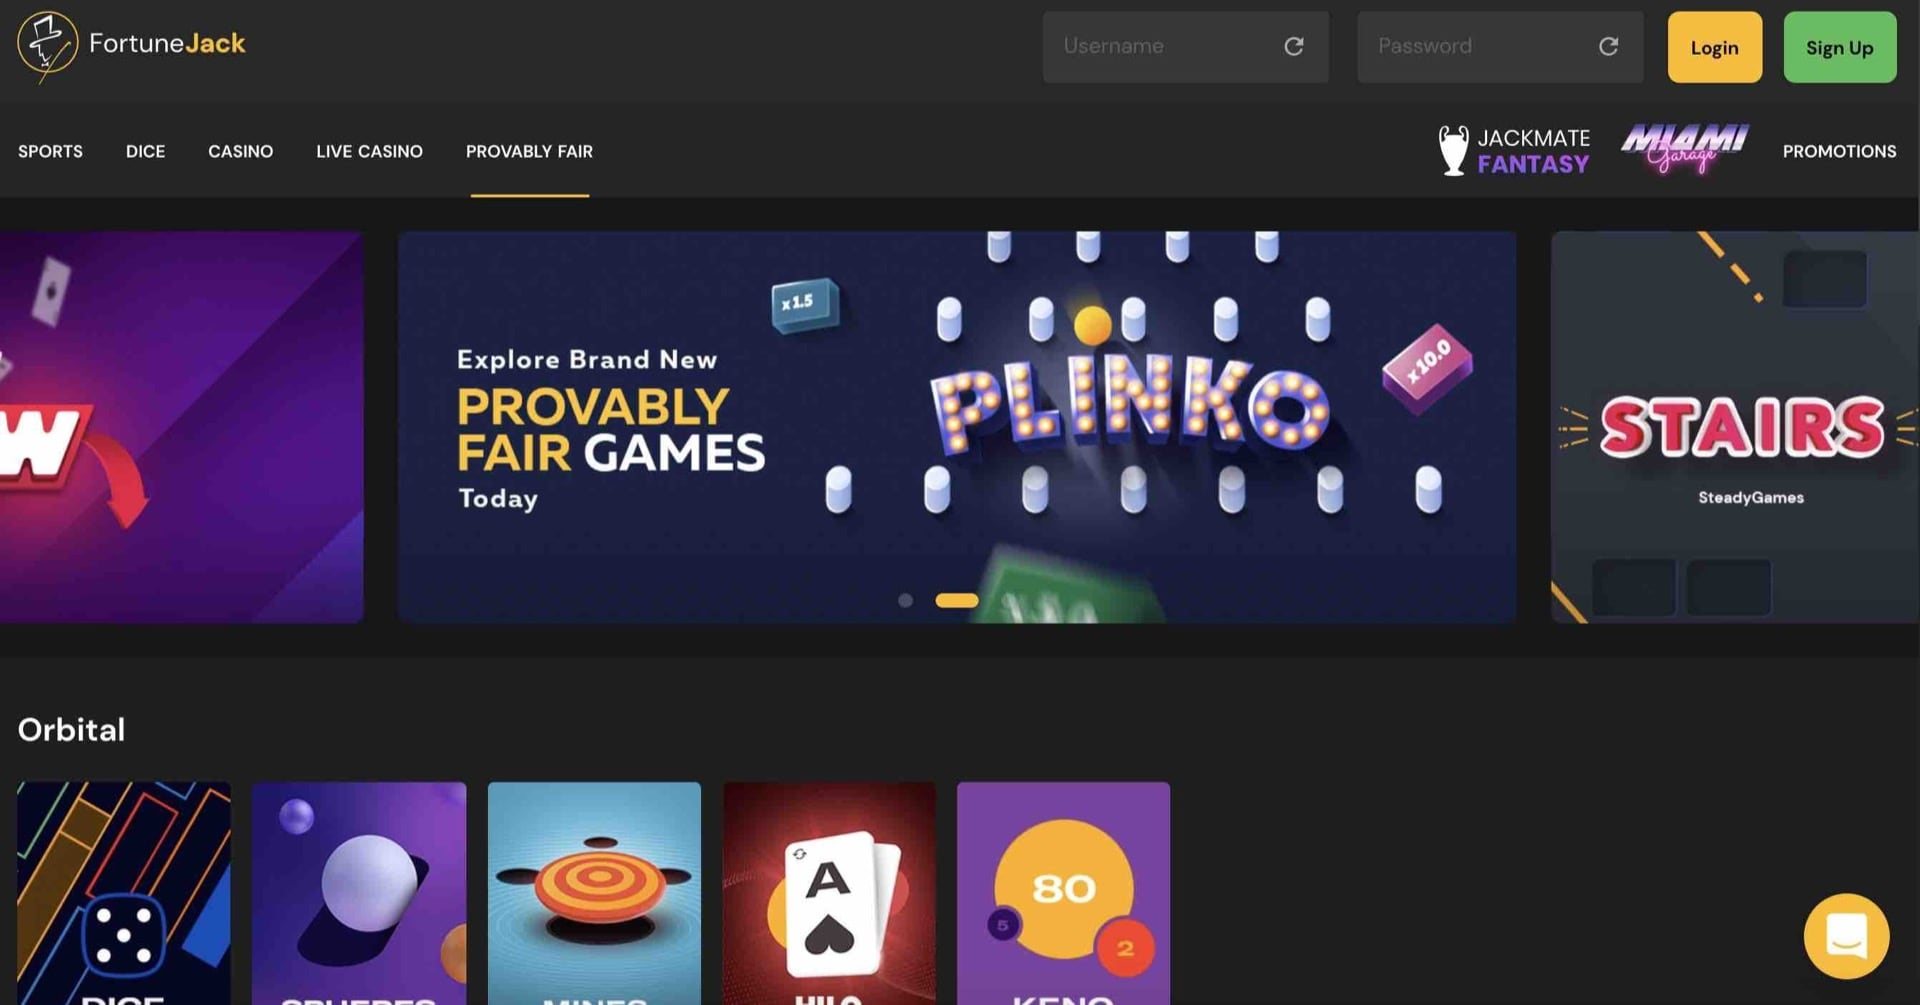 Great Games at FortuneJack Casino